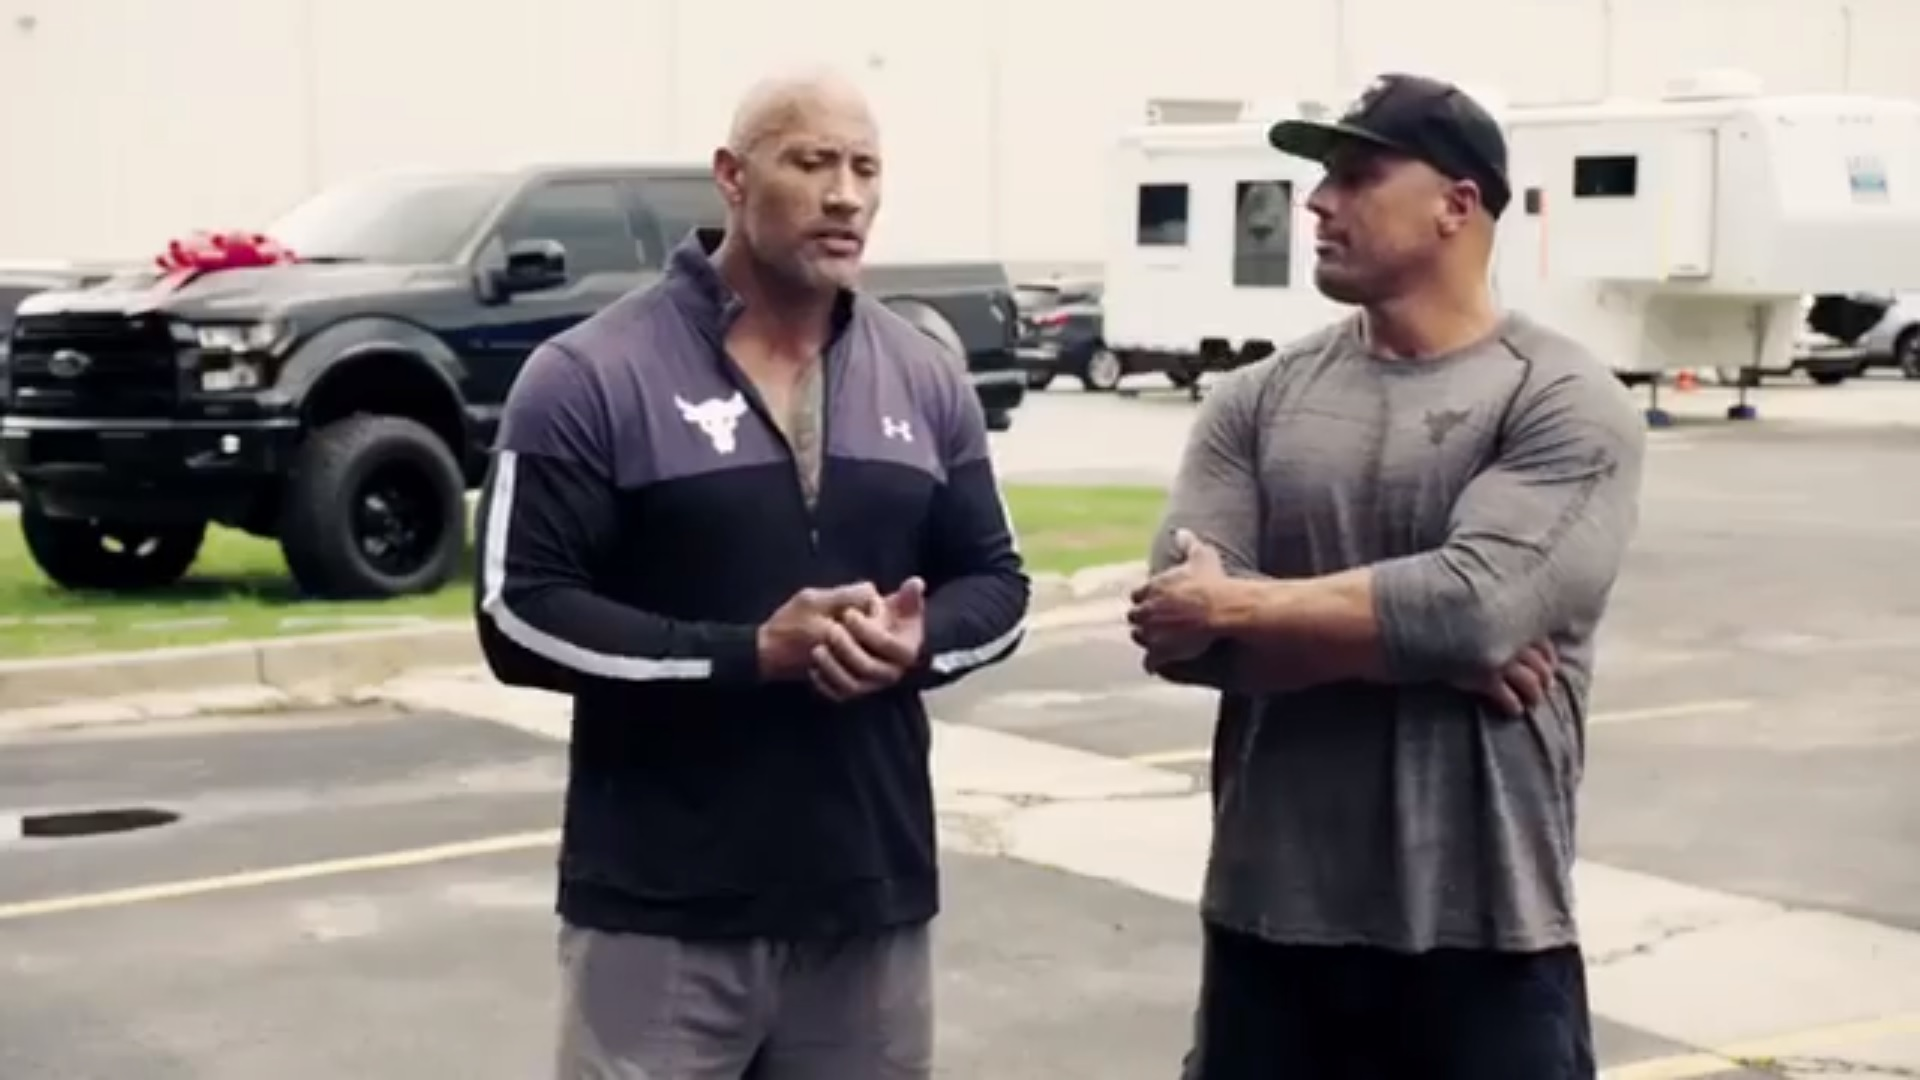 Dwayne 'The Rock' Johnson Surprises Long-Time Stunt Double with Souped-Up Ford F-150